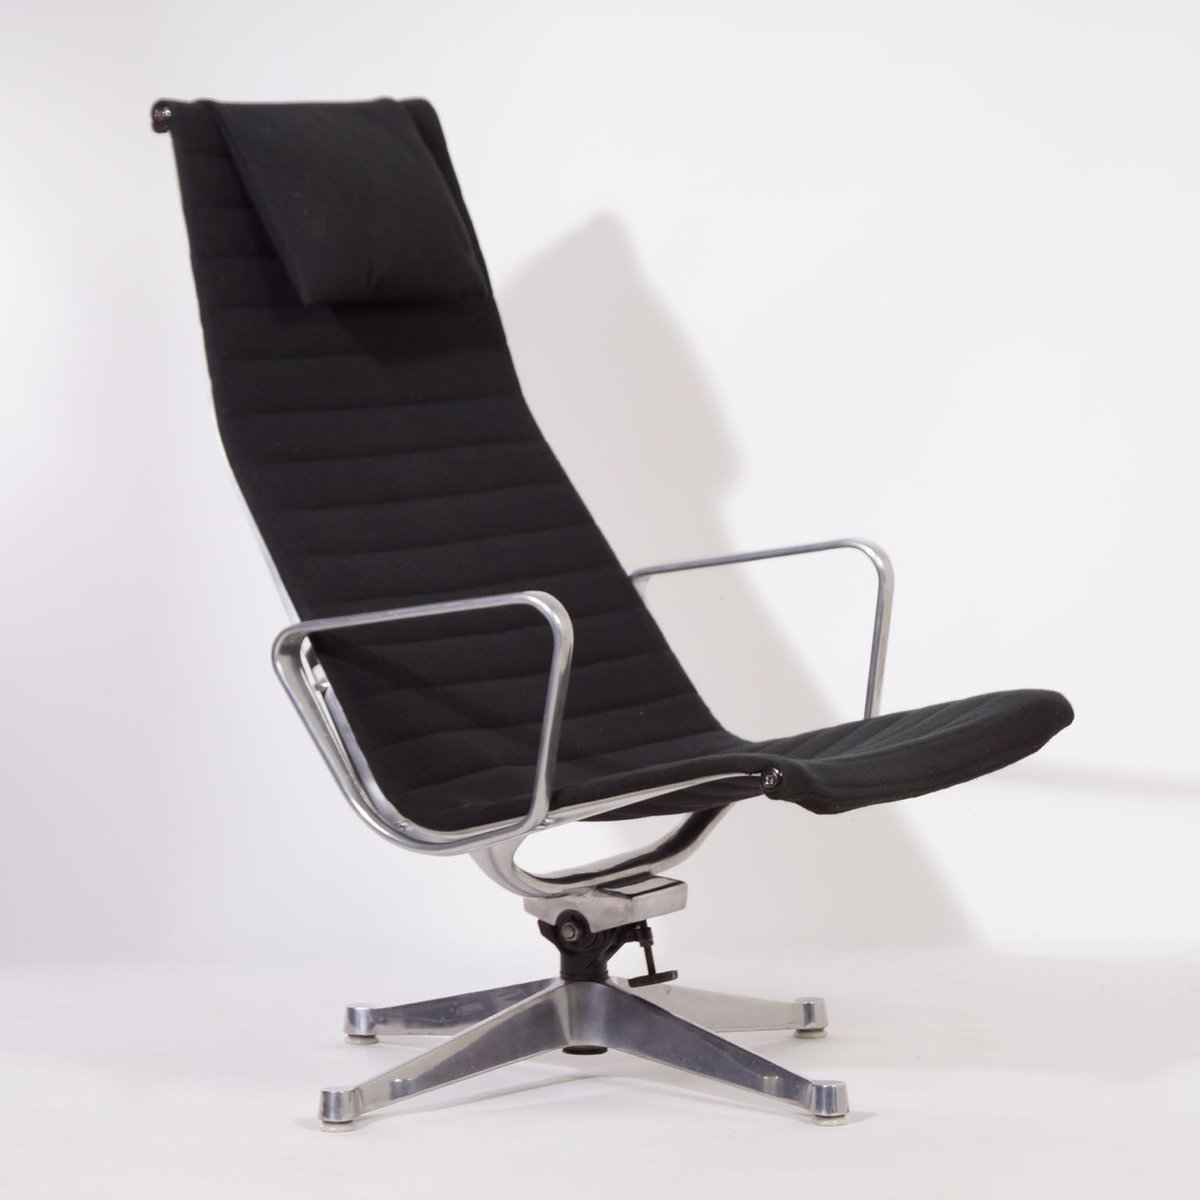 ea124 lounge chair by charles and ray eames for herman. Black Bedroom Furniture Sets. Home Design Ideas